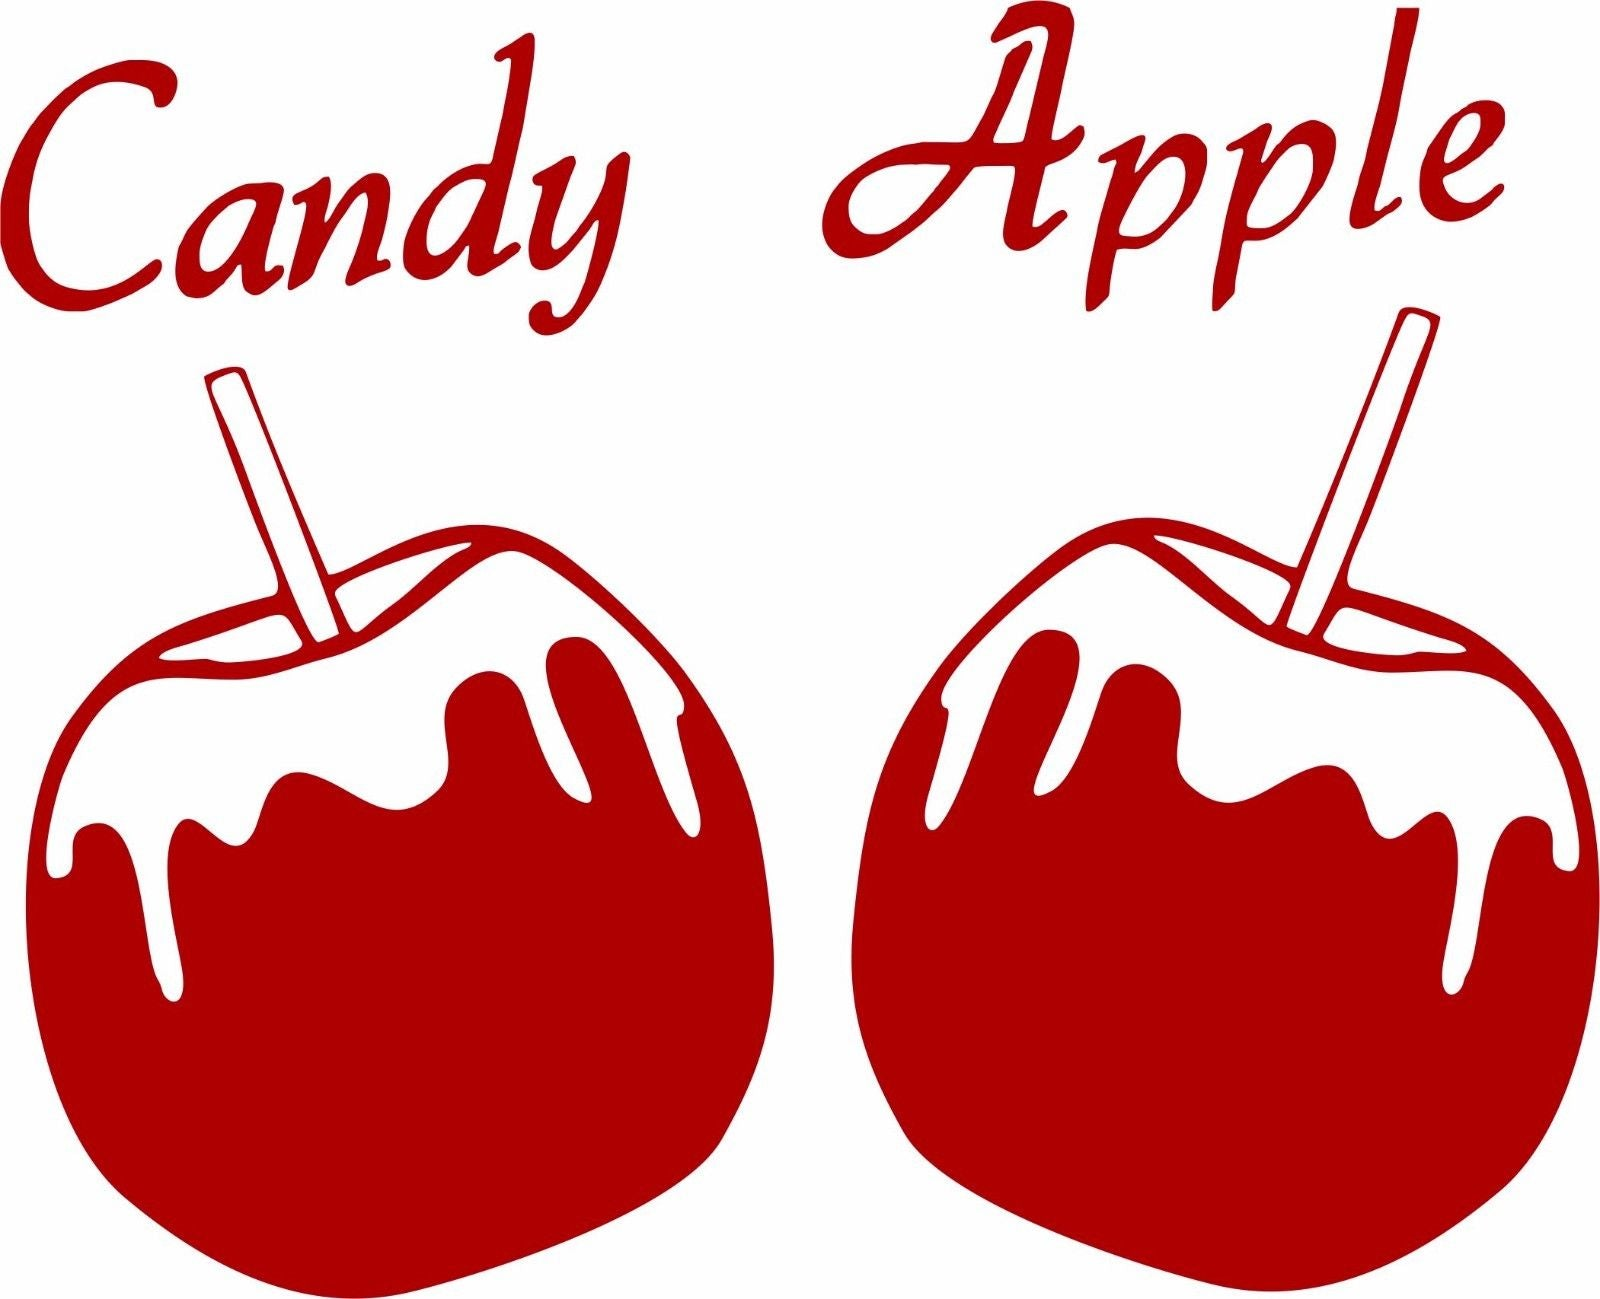 "Candy Apple Fruit Girl Sweet Fair Carnival Truck Car Window Vinyl Decal Sticker - 12"" Long Edge"